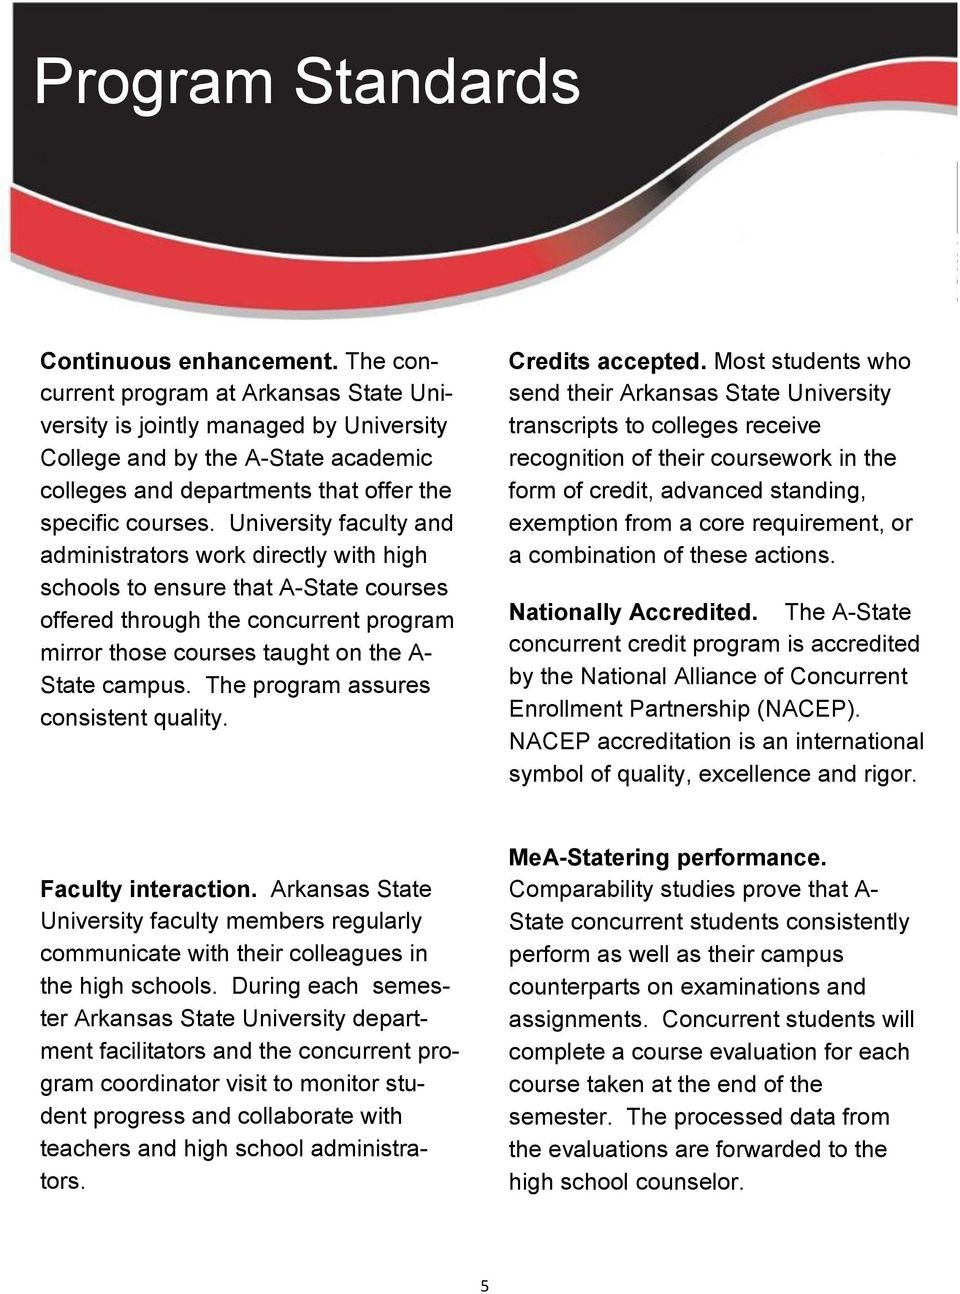 University faculty and administrators work directly with high schools to ensure that A-State courses offered through the concurrent program mirror those courses taught on the A- State campus.